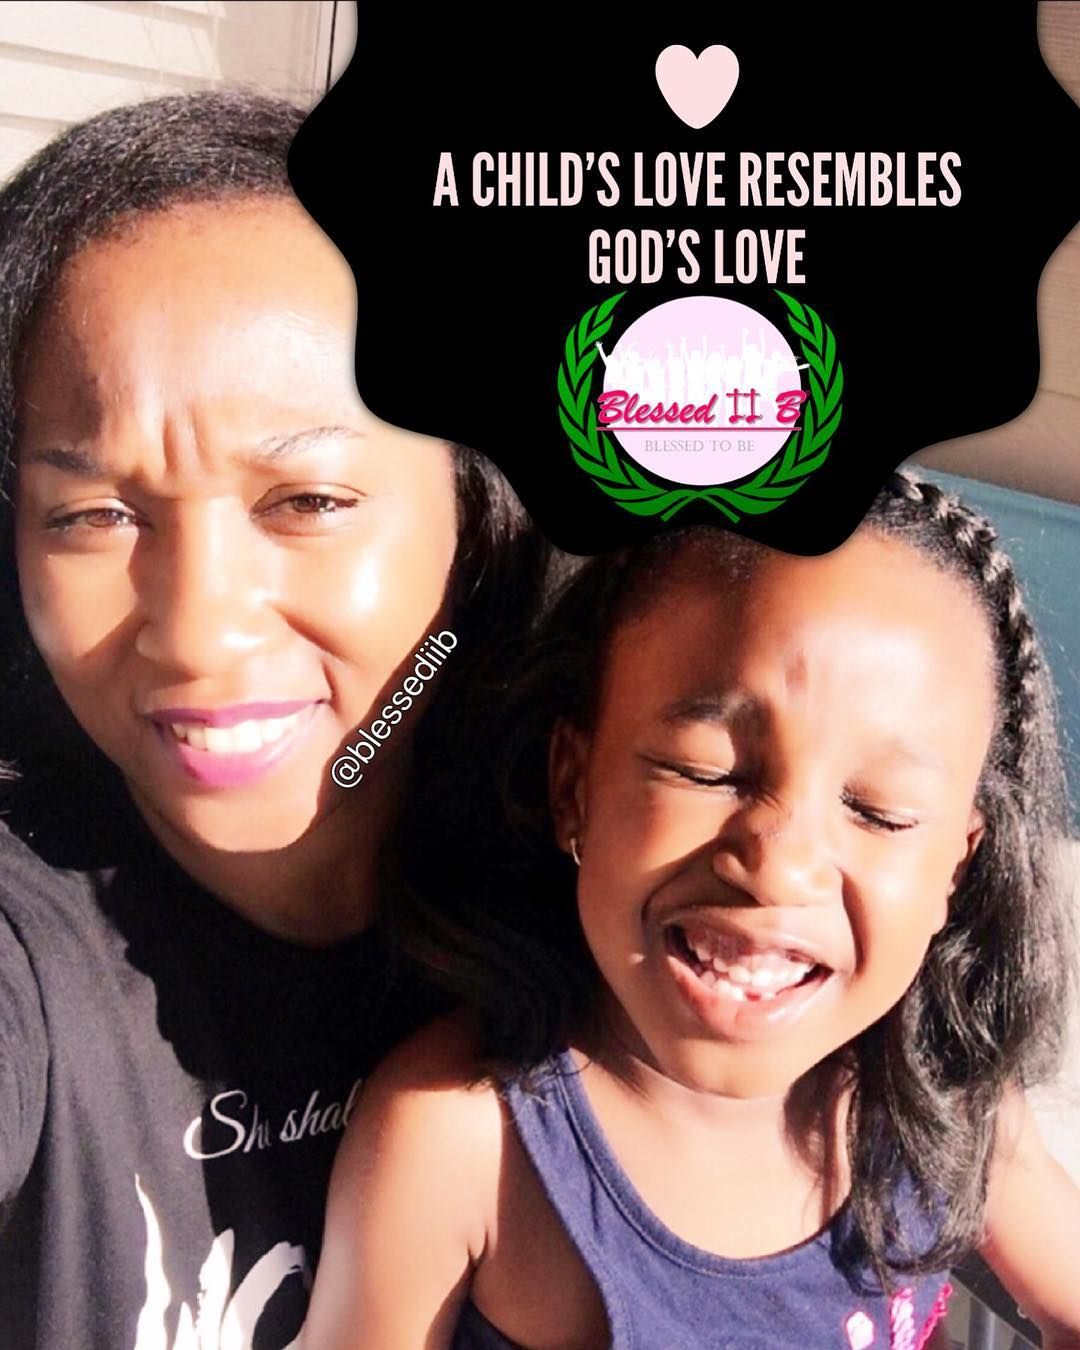 What Are You BLESSED II B? I AM Blessed II B™ a Mom because… - http://koikebotblog.isofact.net/mendressfashion/2017/10/28/what-are-you-blessed-ii-b-i-am-blessed-ii-b-a-mom-because/